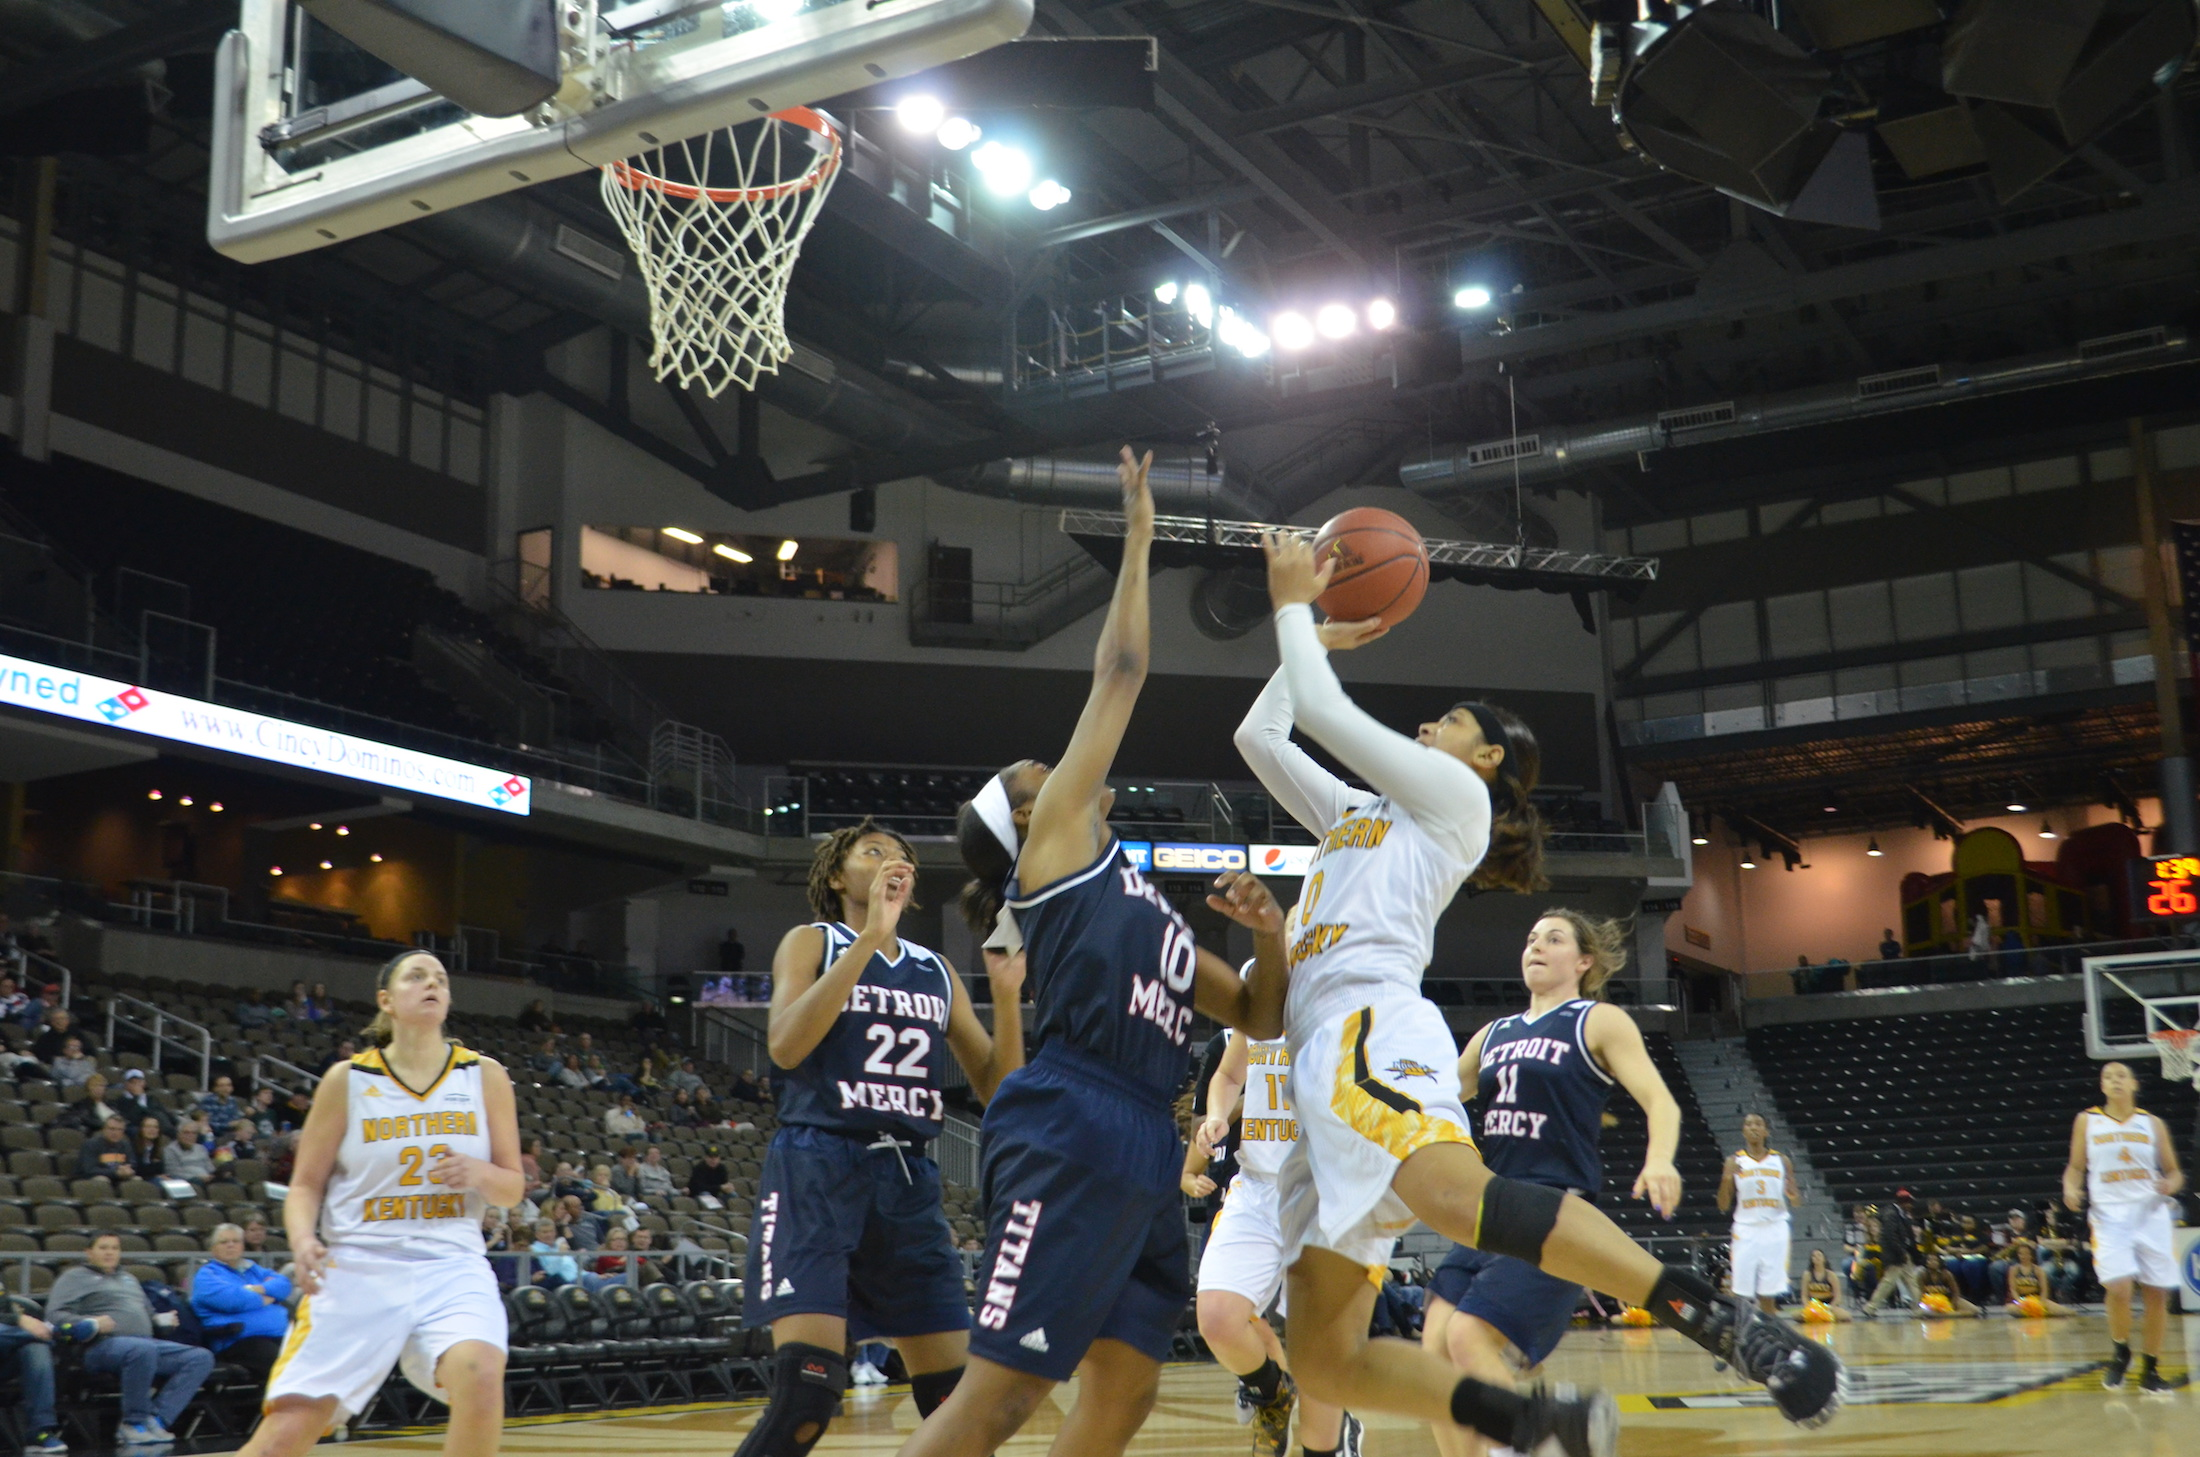 NKU's Shar'Rae Davis goes up with the ball at BB&T Arena against Detroit on Sunday.